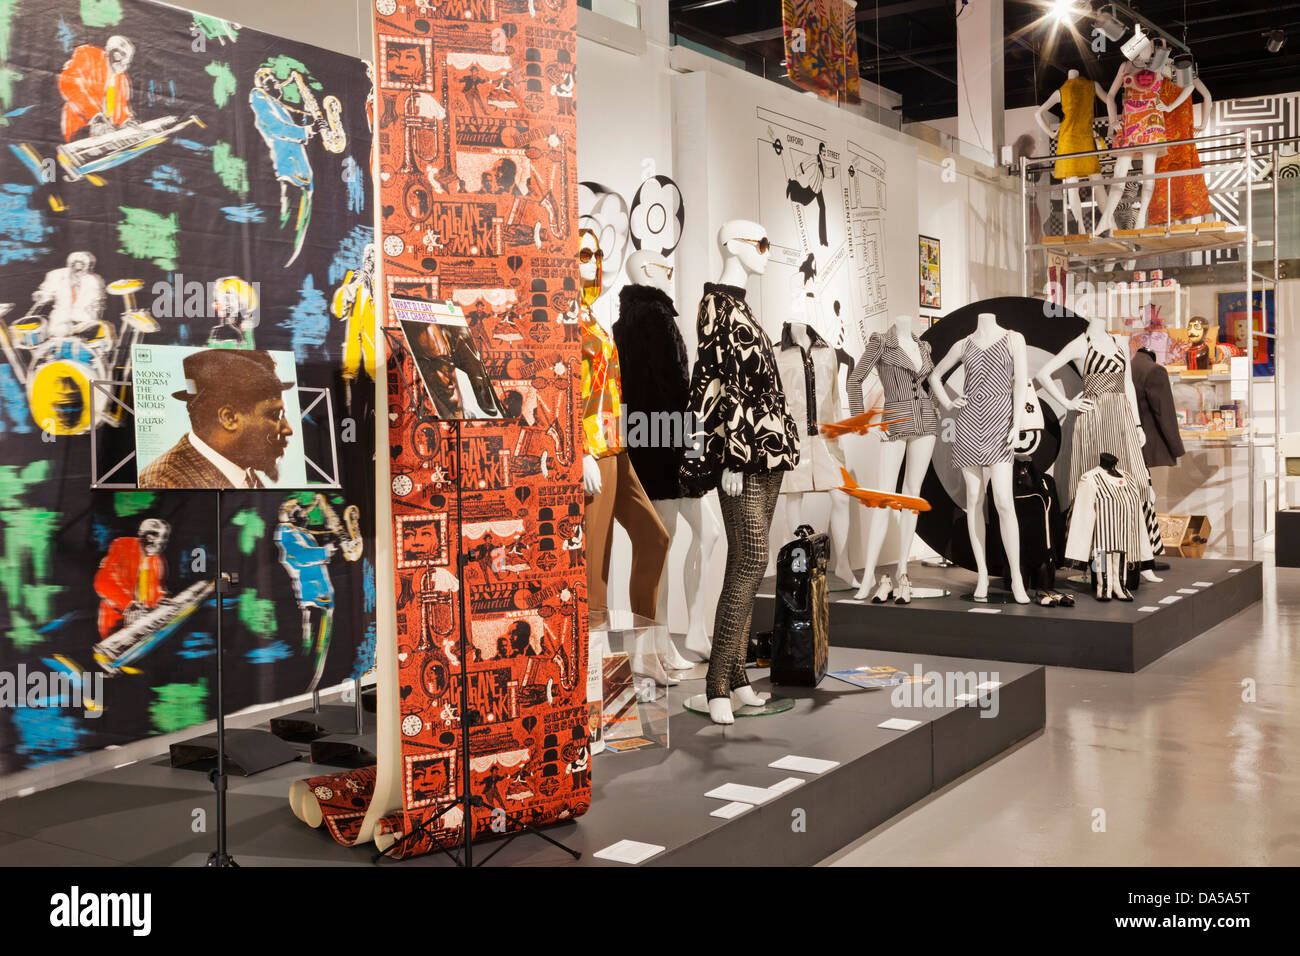 England, London, Southwark, The Fashion and Textile Museum - Stock Image